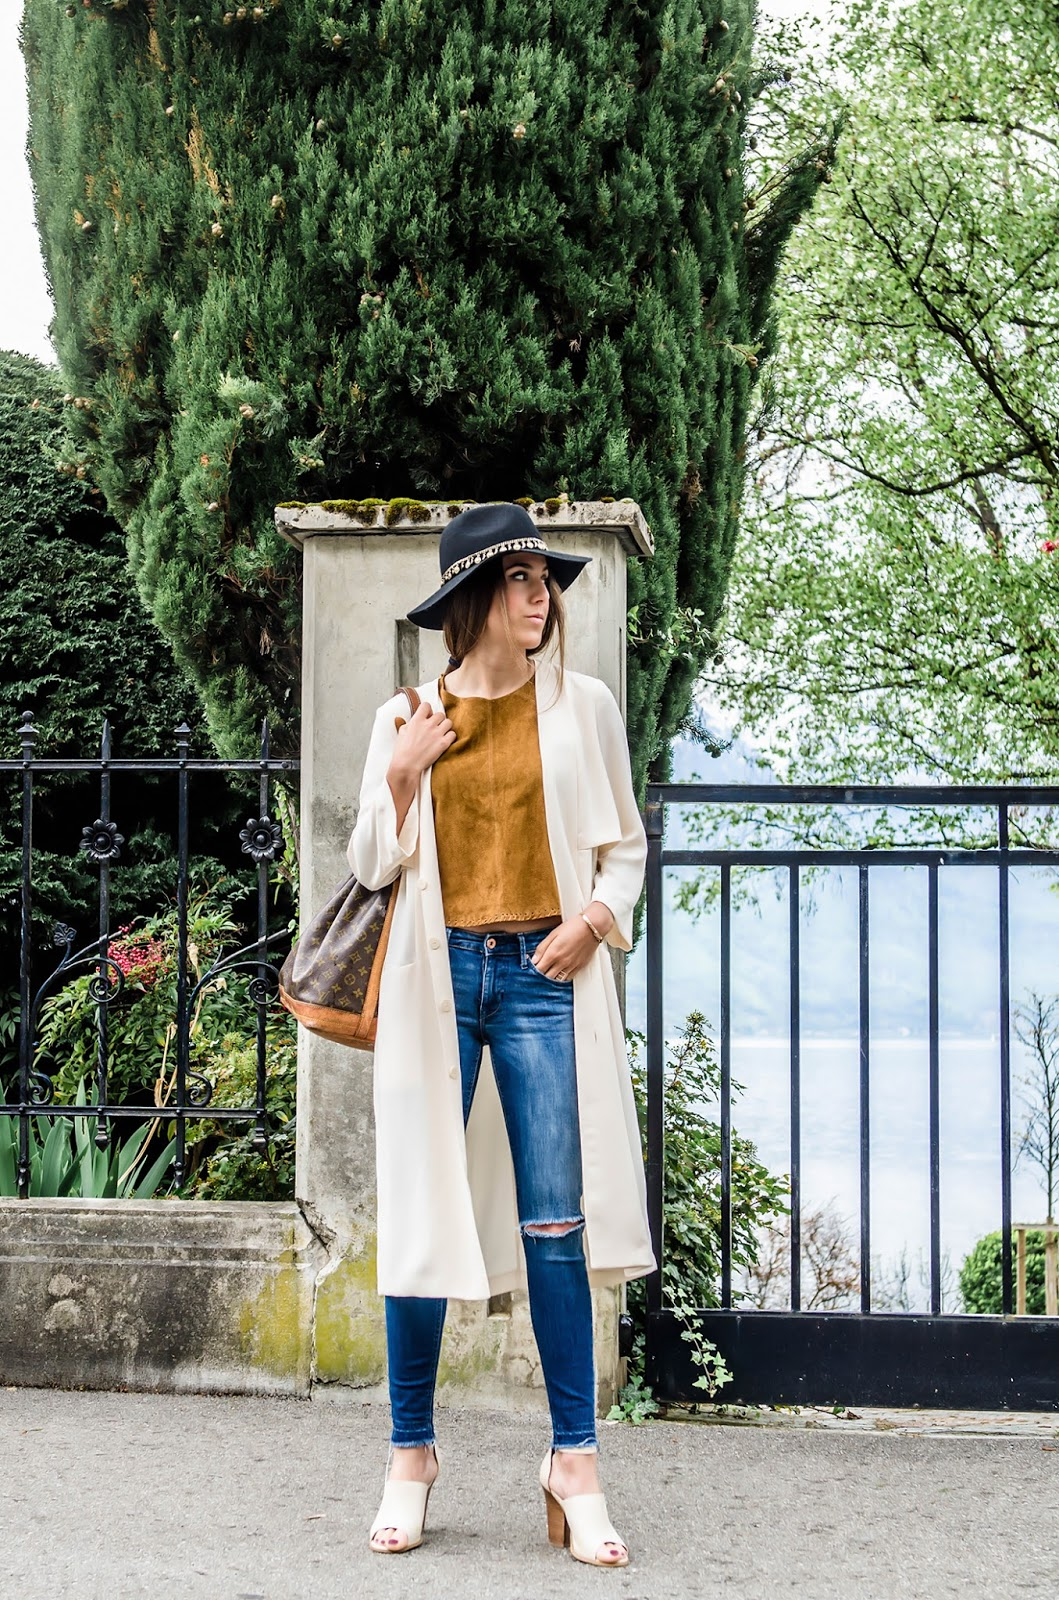 alison liaudat, blog mode suisee, swiss fashion blogger, blog from switzerland, beauty blogger von der Schweiz, hat, asos, zara, suede trend spring 2015, louis vuitton vintage, aldo, H&M